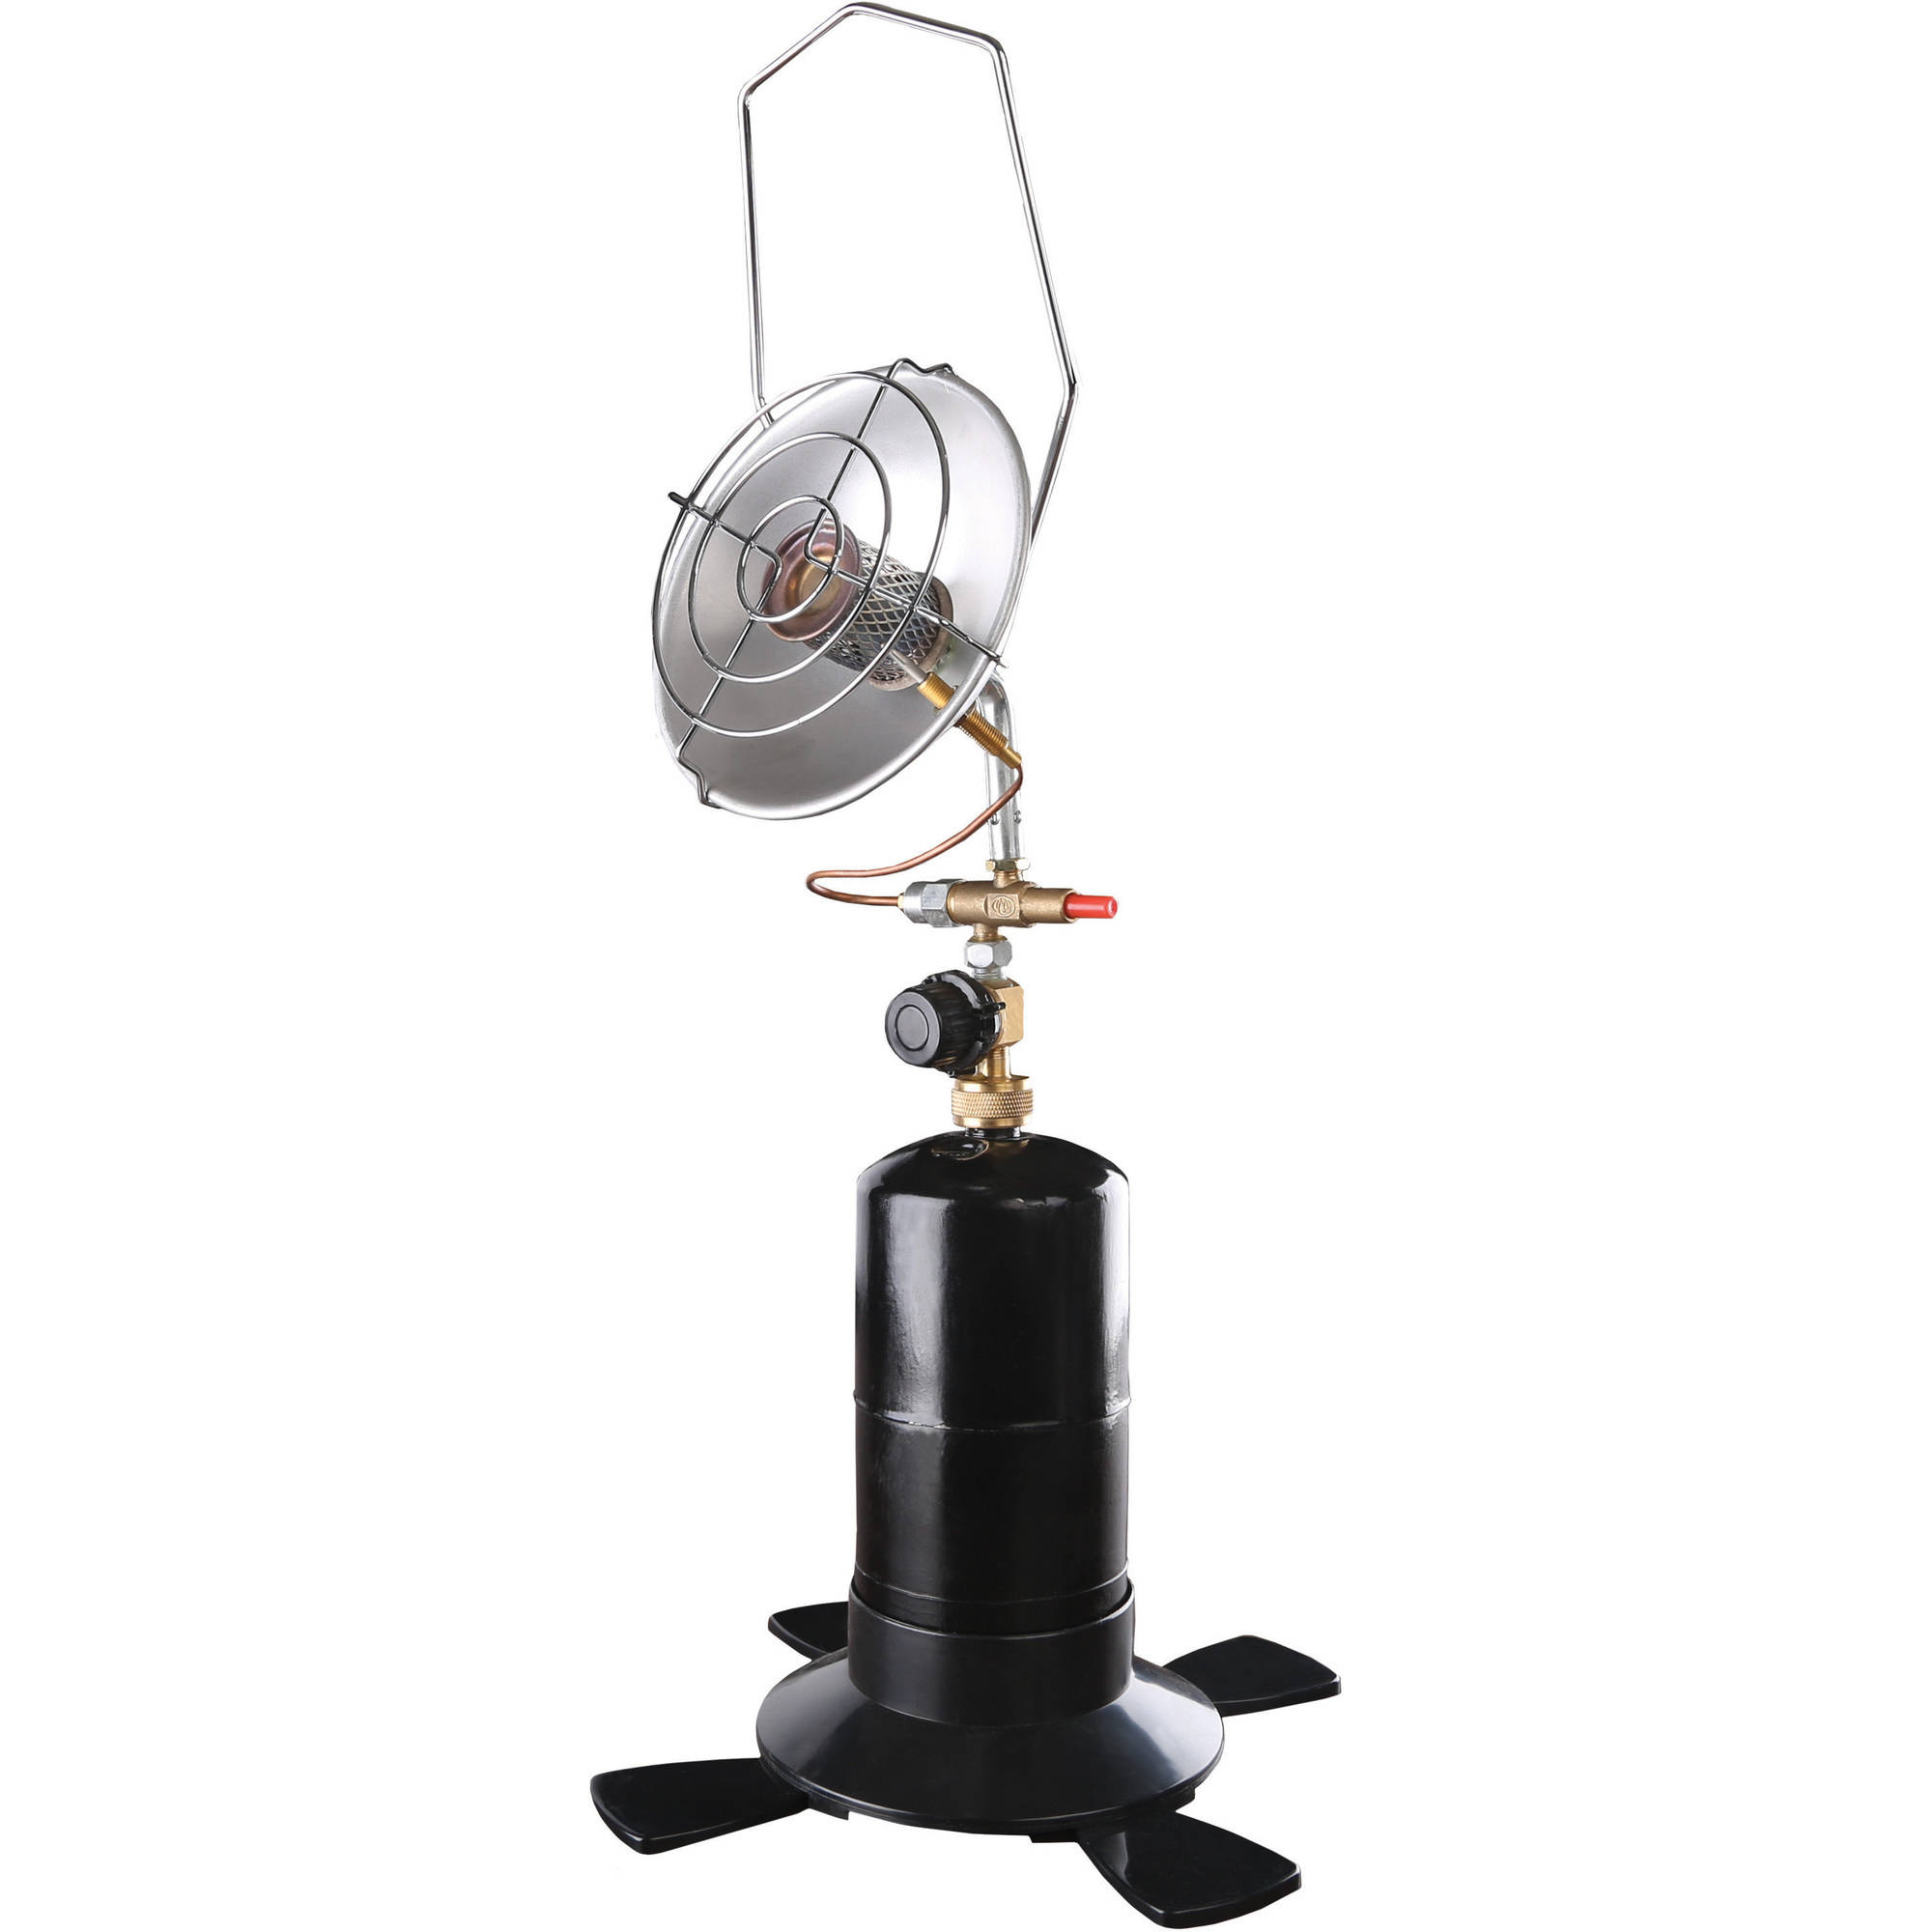 Stansport Portable Outdoor Infrared Propane Heater by Stansport